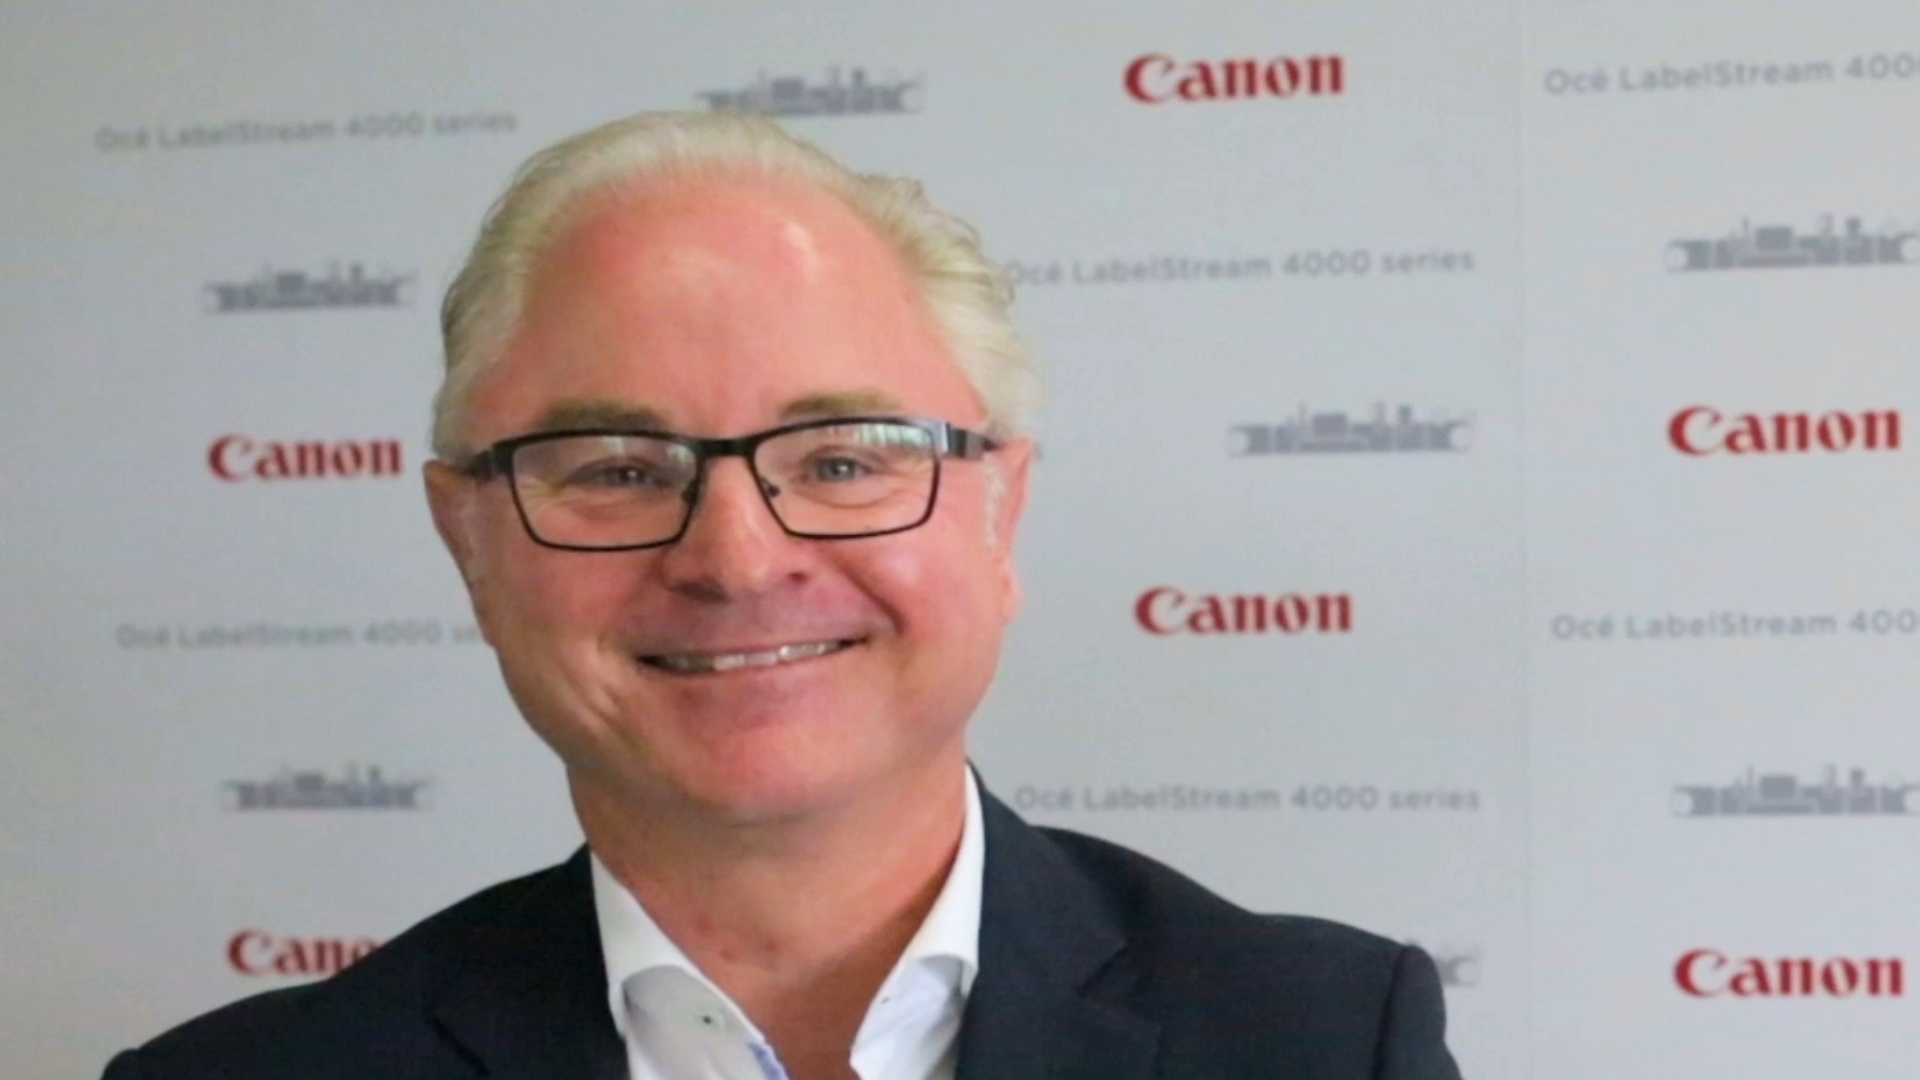 Update on Canon Océ Product Strategy